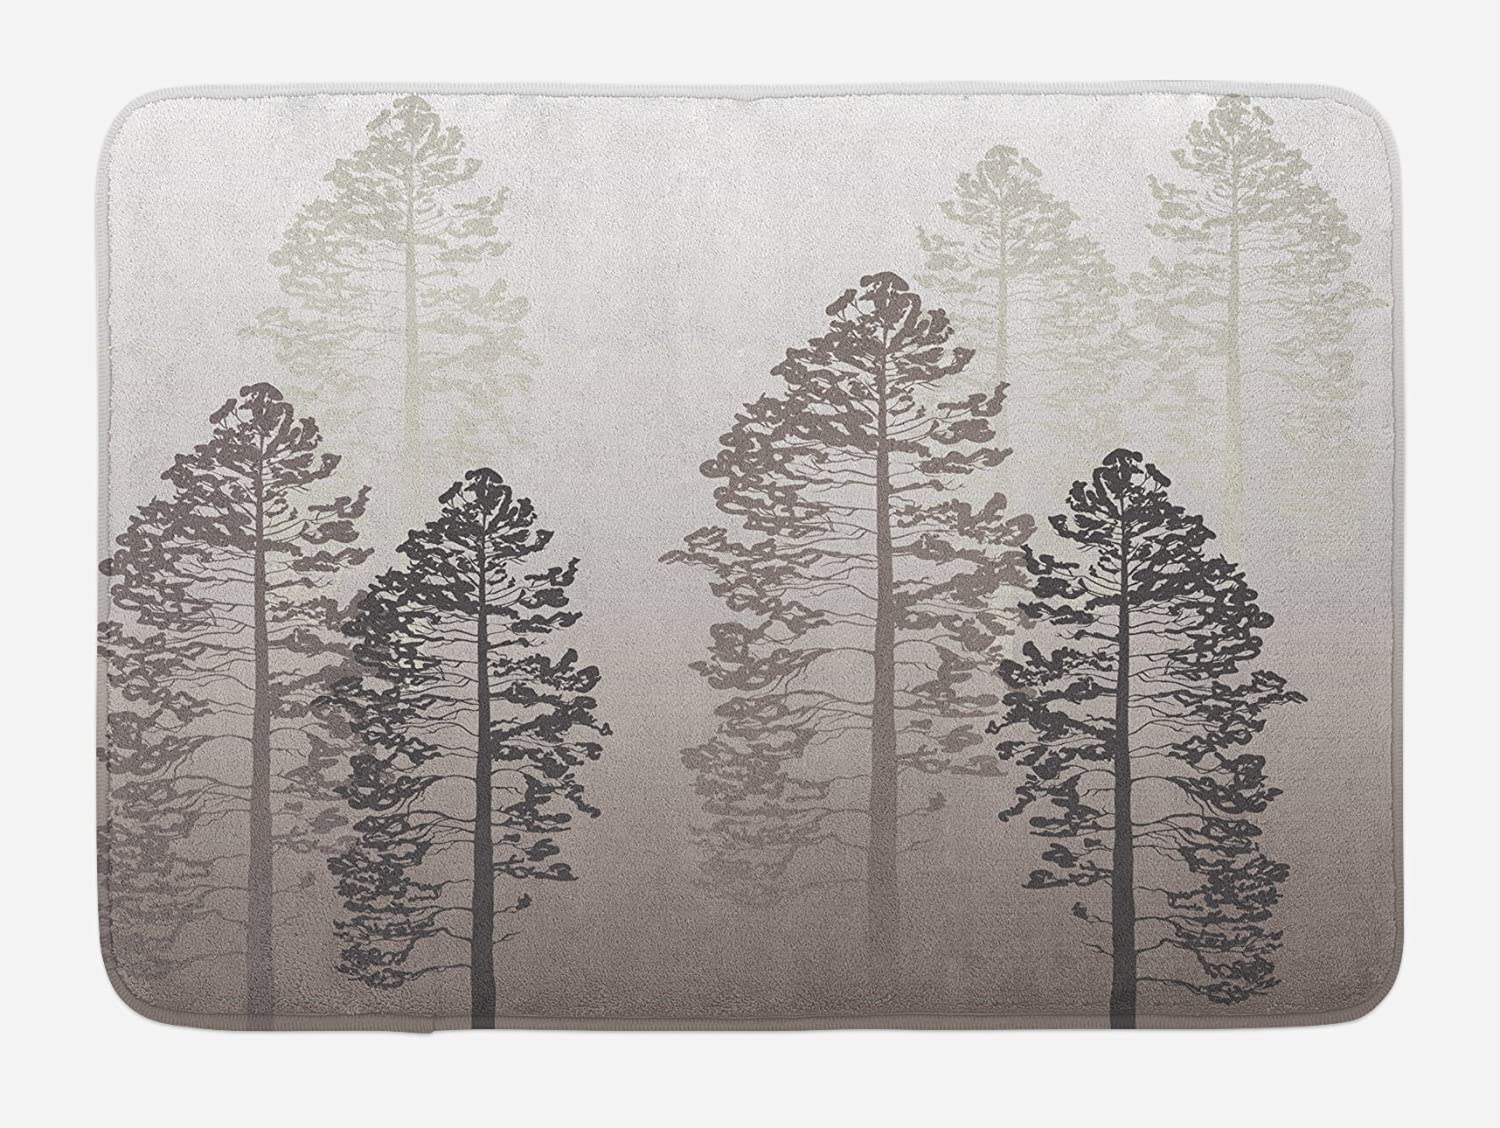 Ambesonne Country Bath Mat, Pine Trees in The Forest on Foggy Seem Ombre Backdrop Wildlife Adventure Artwork, Plush Bathroom Decor Mat with Non Slip Backing, 29.5